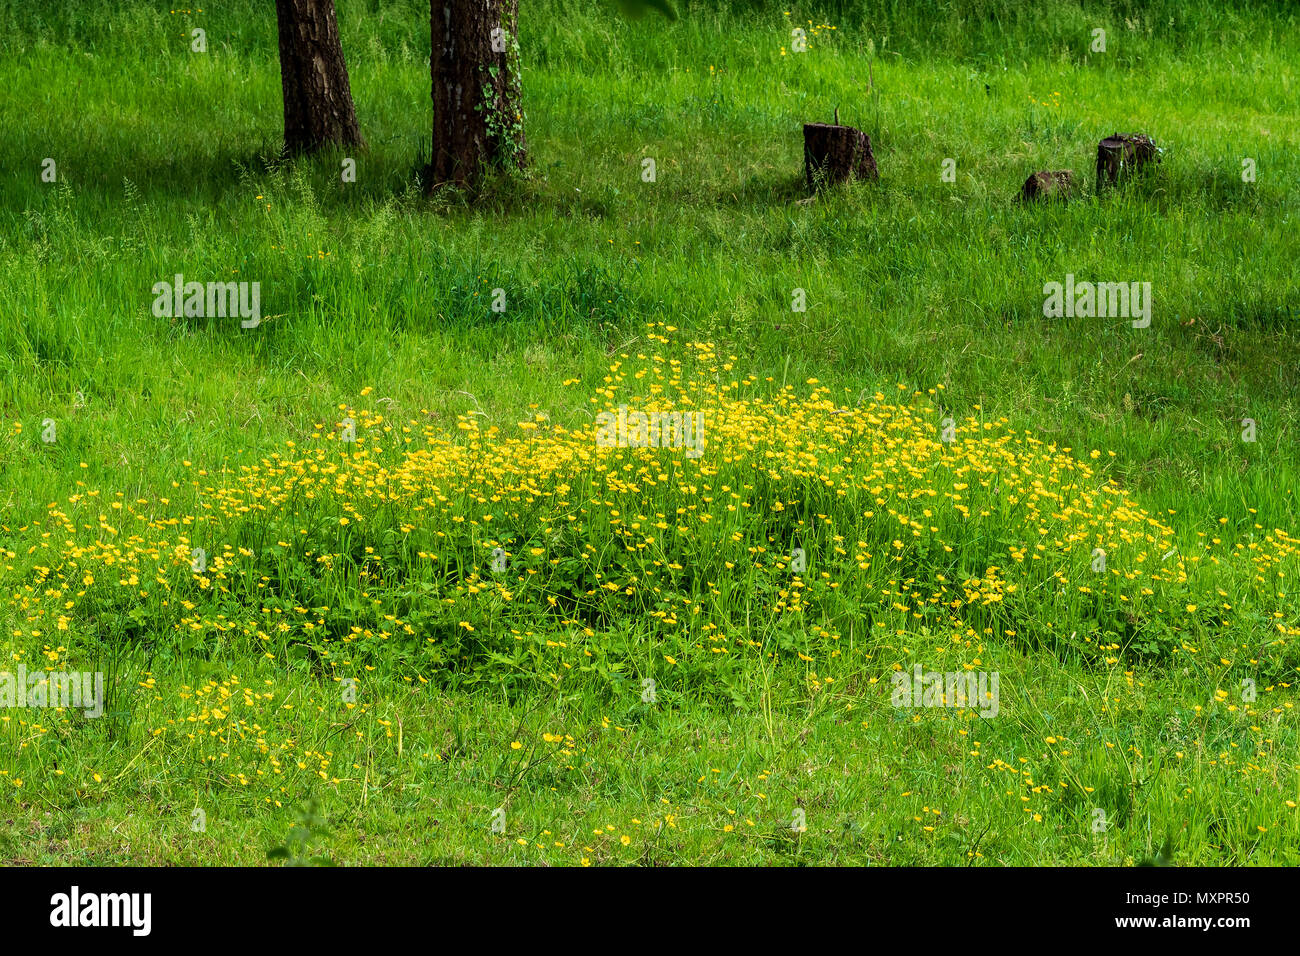 A patch of buttercups in a field - Stock Image